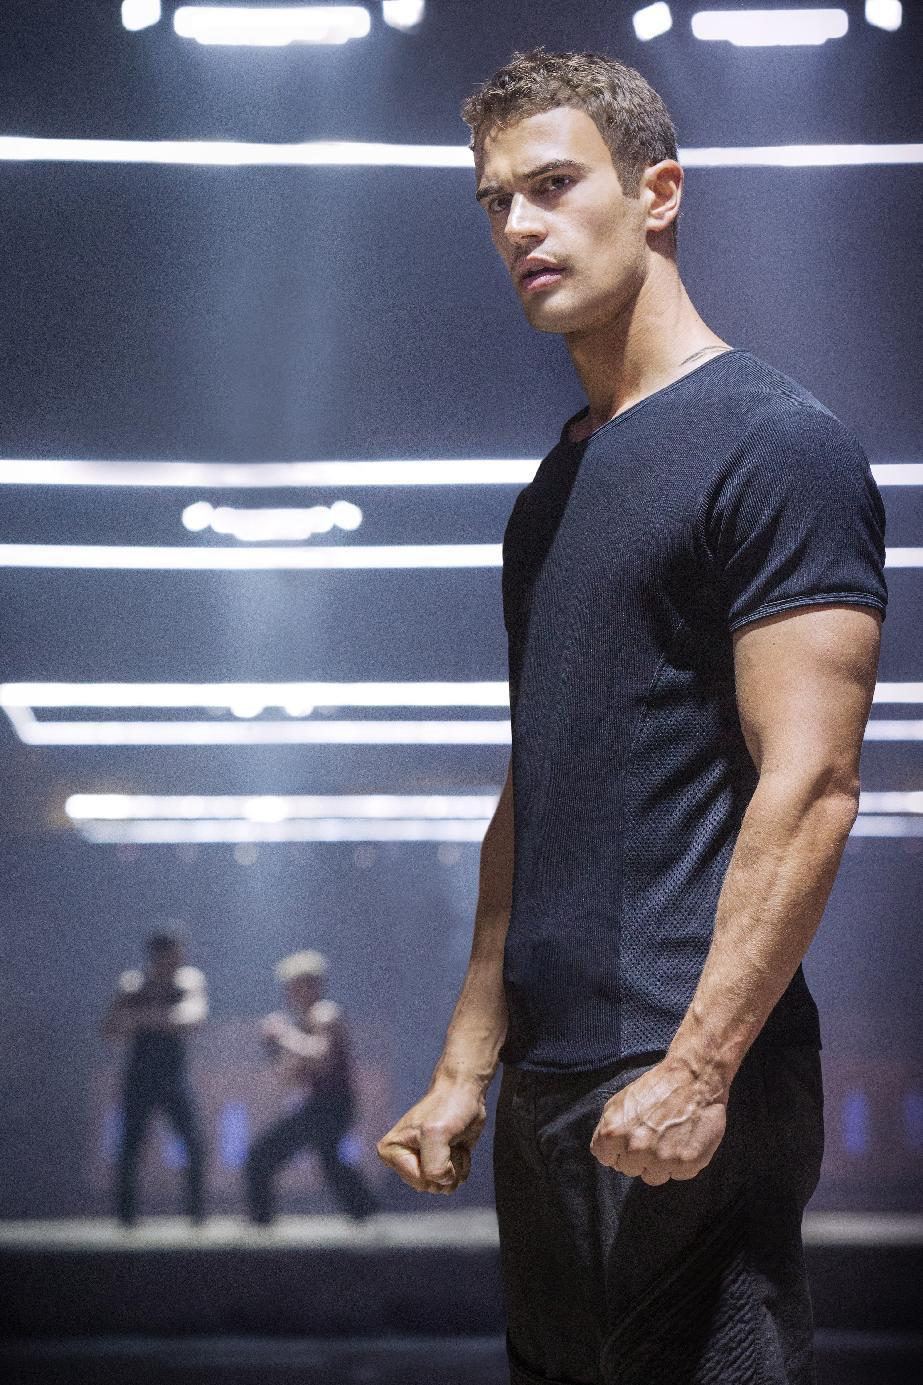 """This photo released by Summit Entertainment, LLC shows Theo James as Four in the film, """"Divergent."""" The movie releases on Friday, March 21, 2014. (AP Photo/Summit Entertainment, Jaap Buitendijk)"""